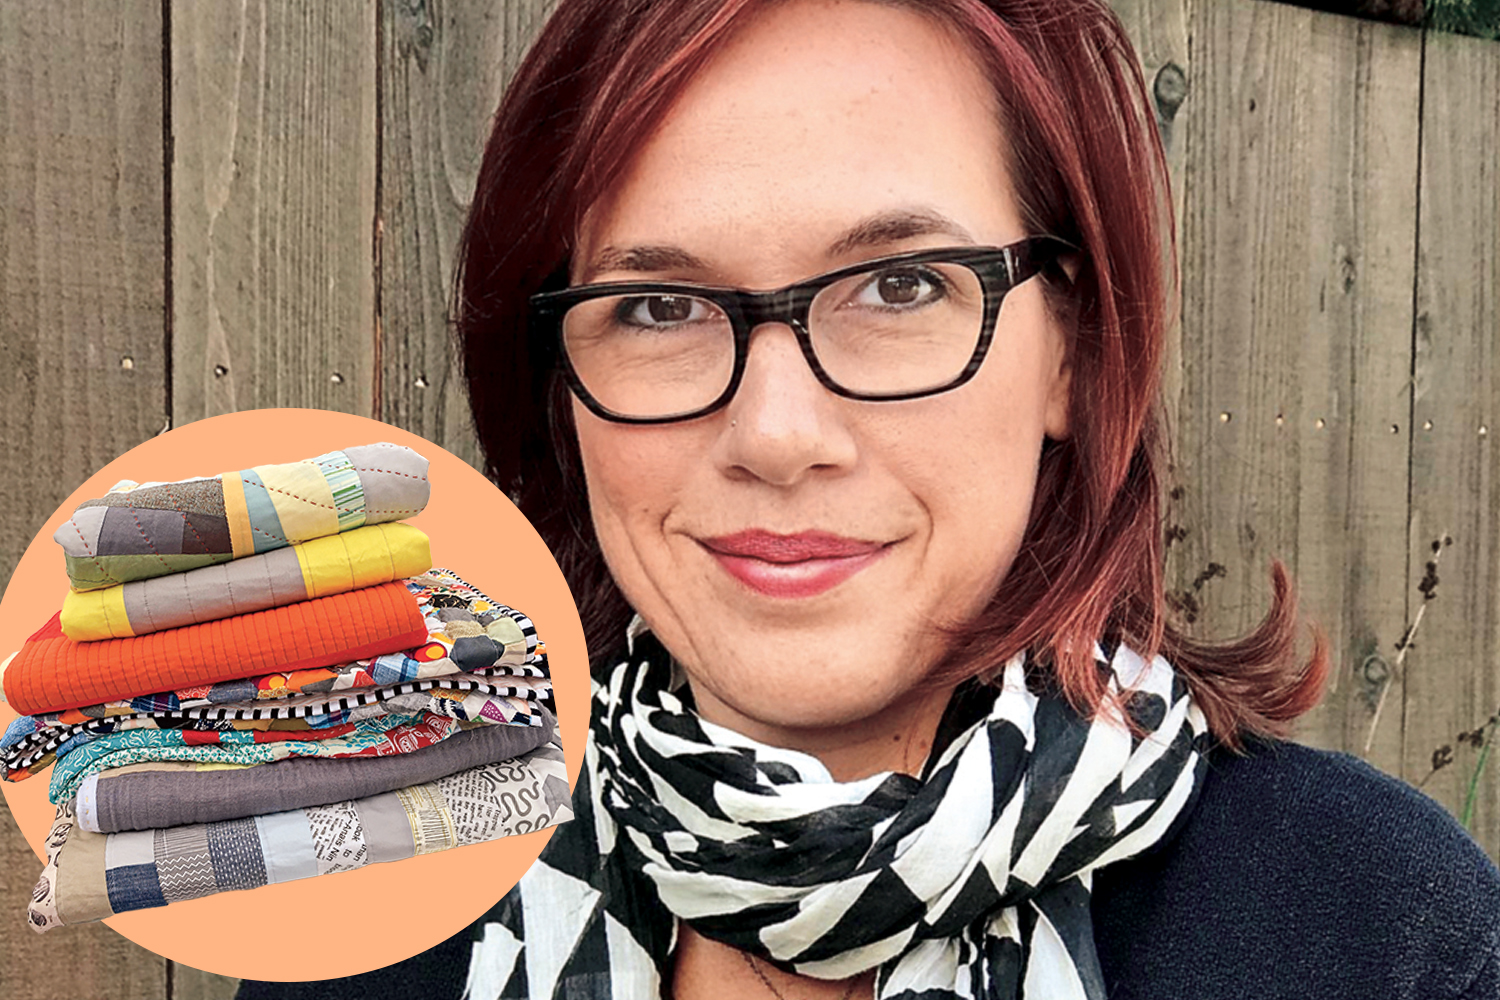 How to make and sell quilts online